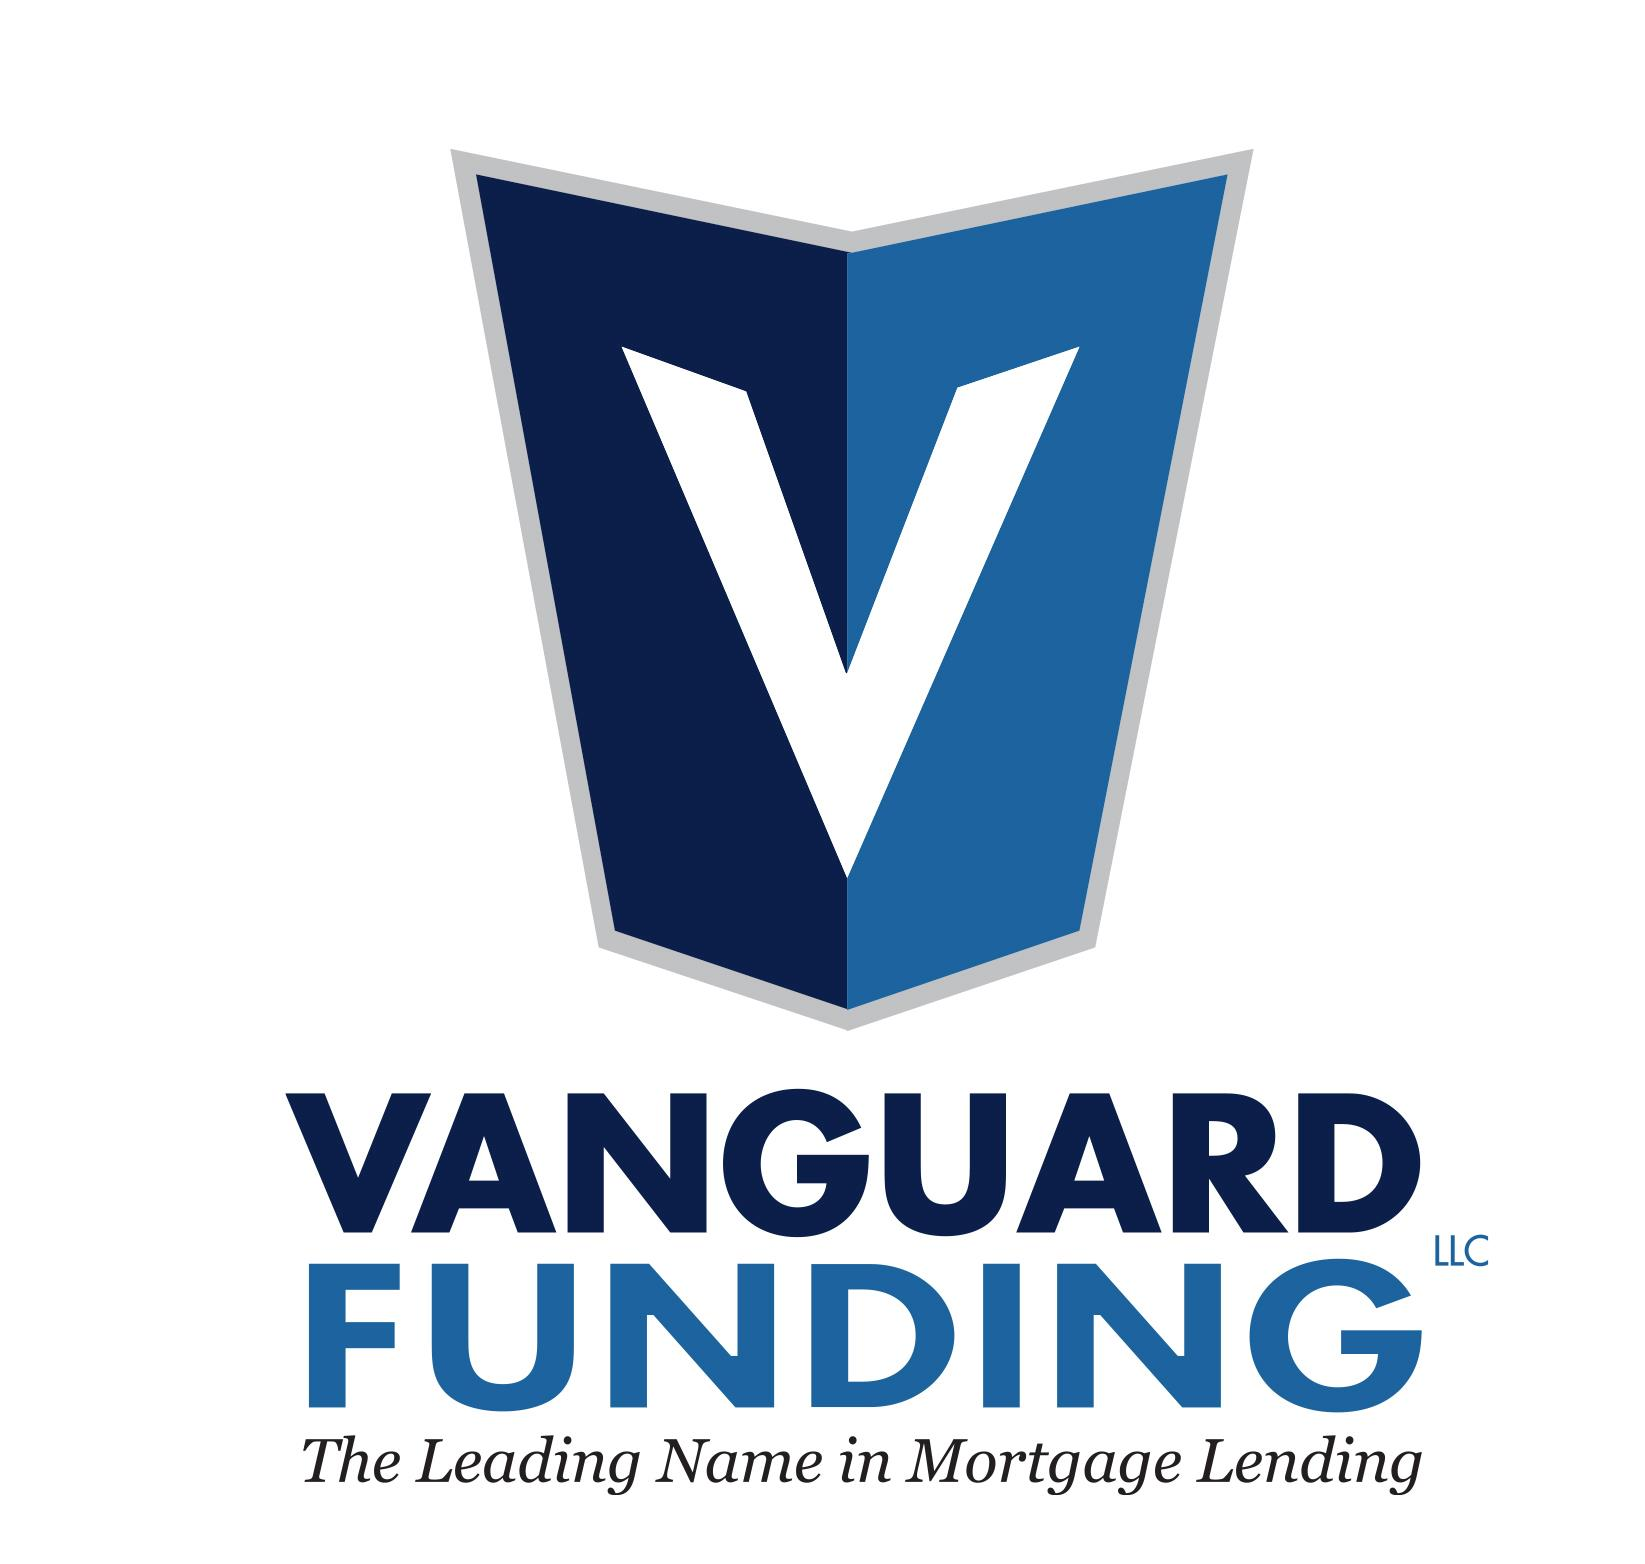 Vanguard funding robert tuzzo new york ny for 140 broadway 46th floor new york ny 10005